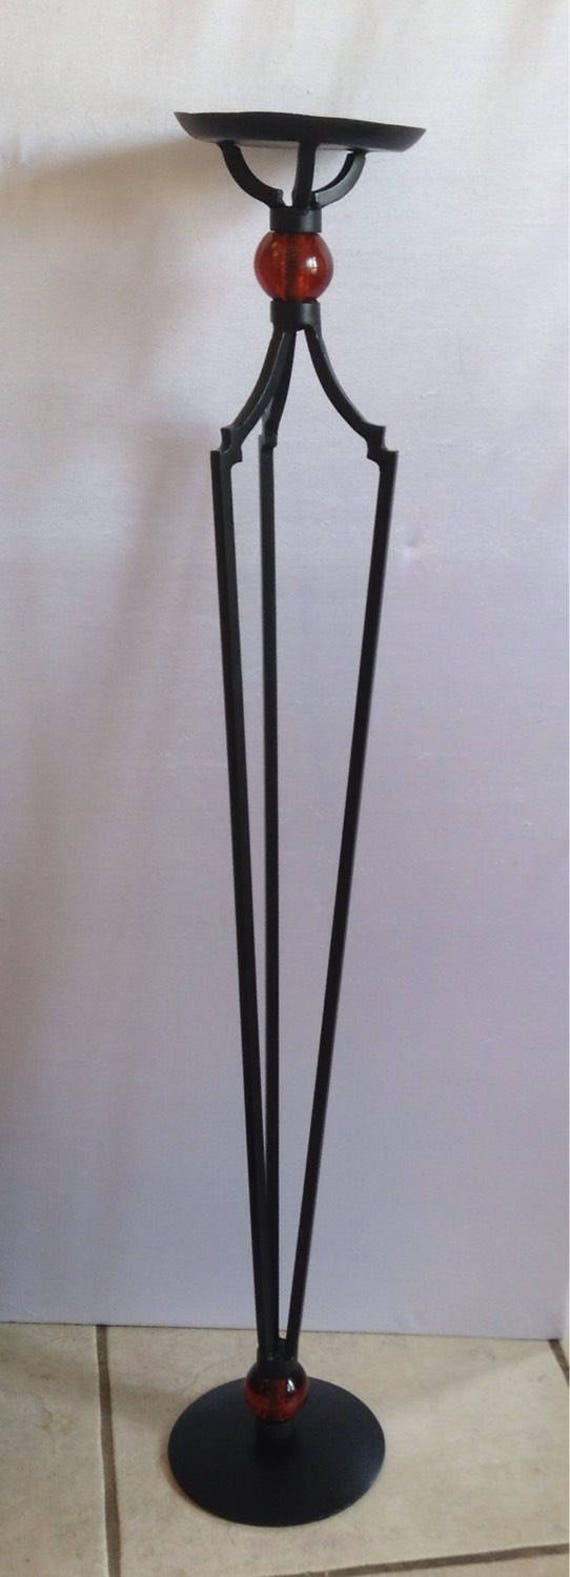 Wrought Iron Artwork Tall Wrought Iron Art Deco Decorative Floor Standing Candle